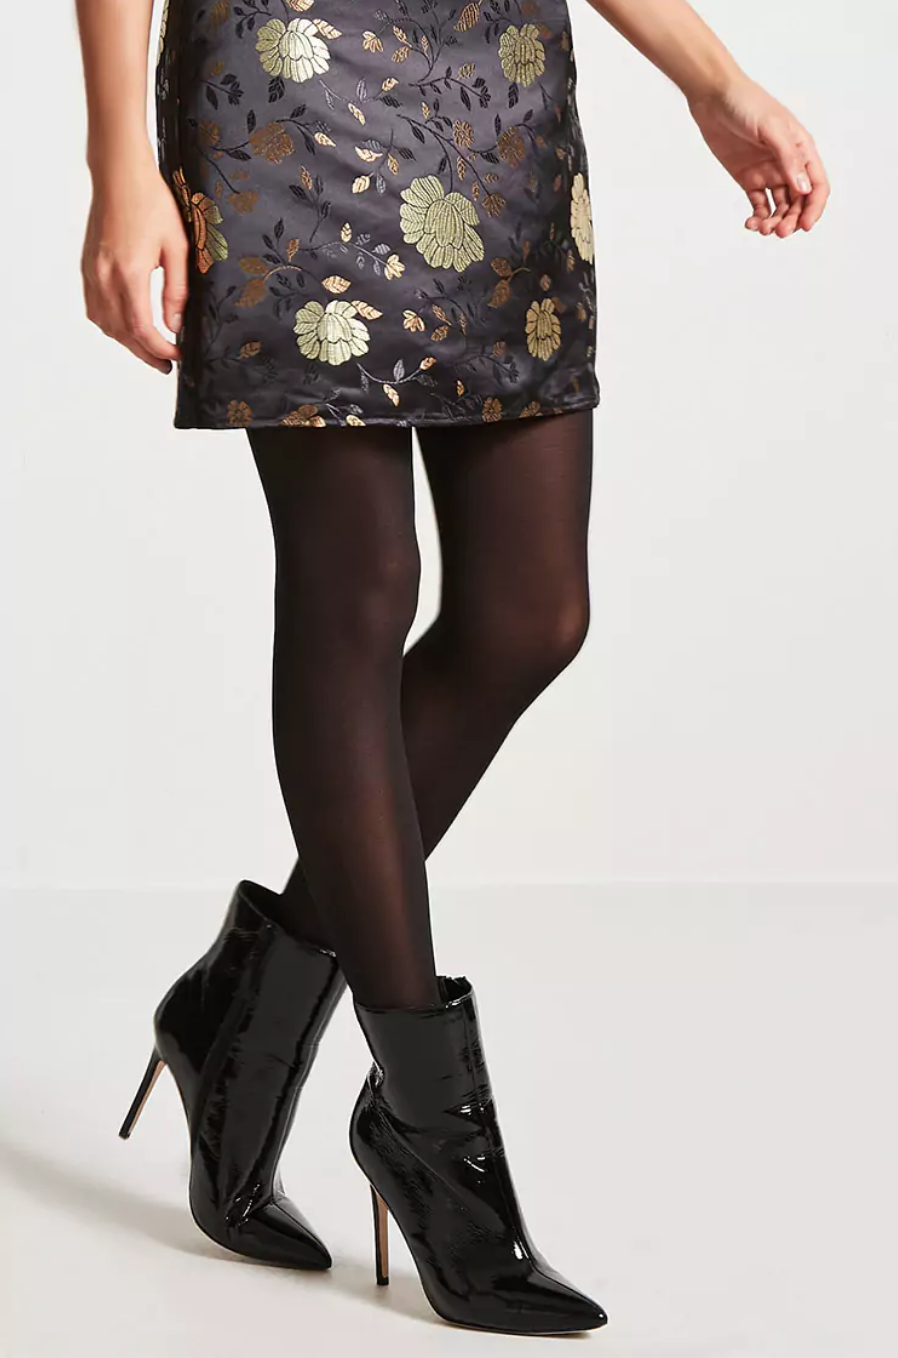 tanger outlets forever 21 opaque black tights